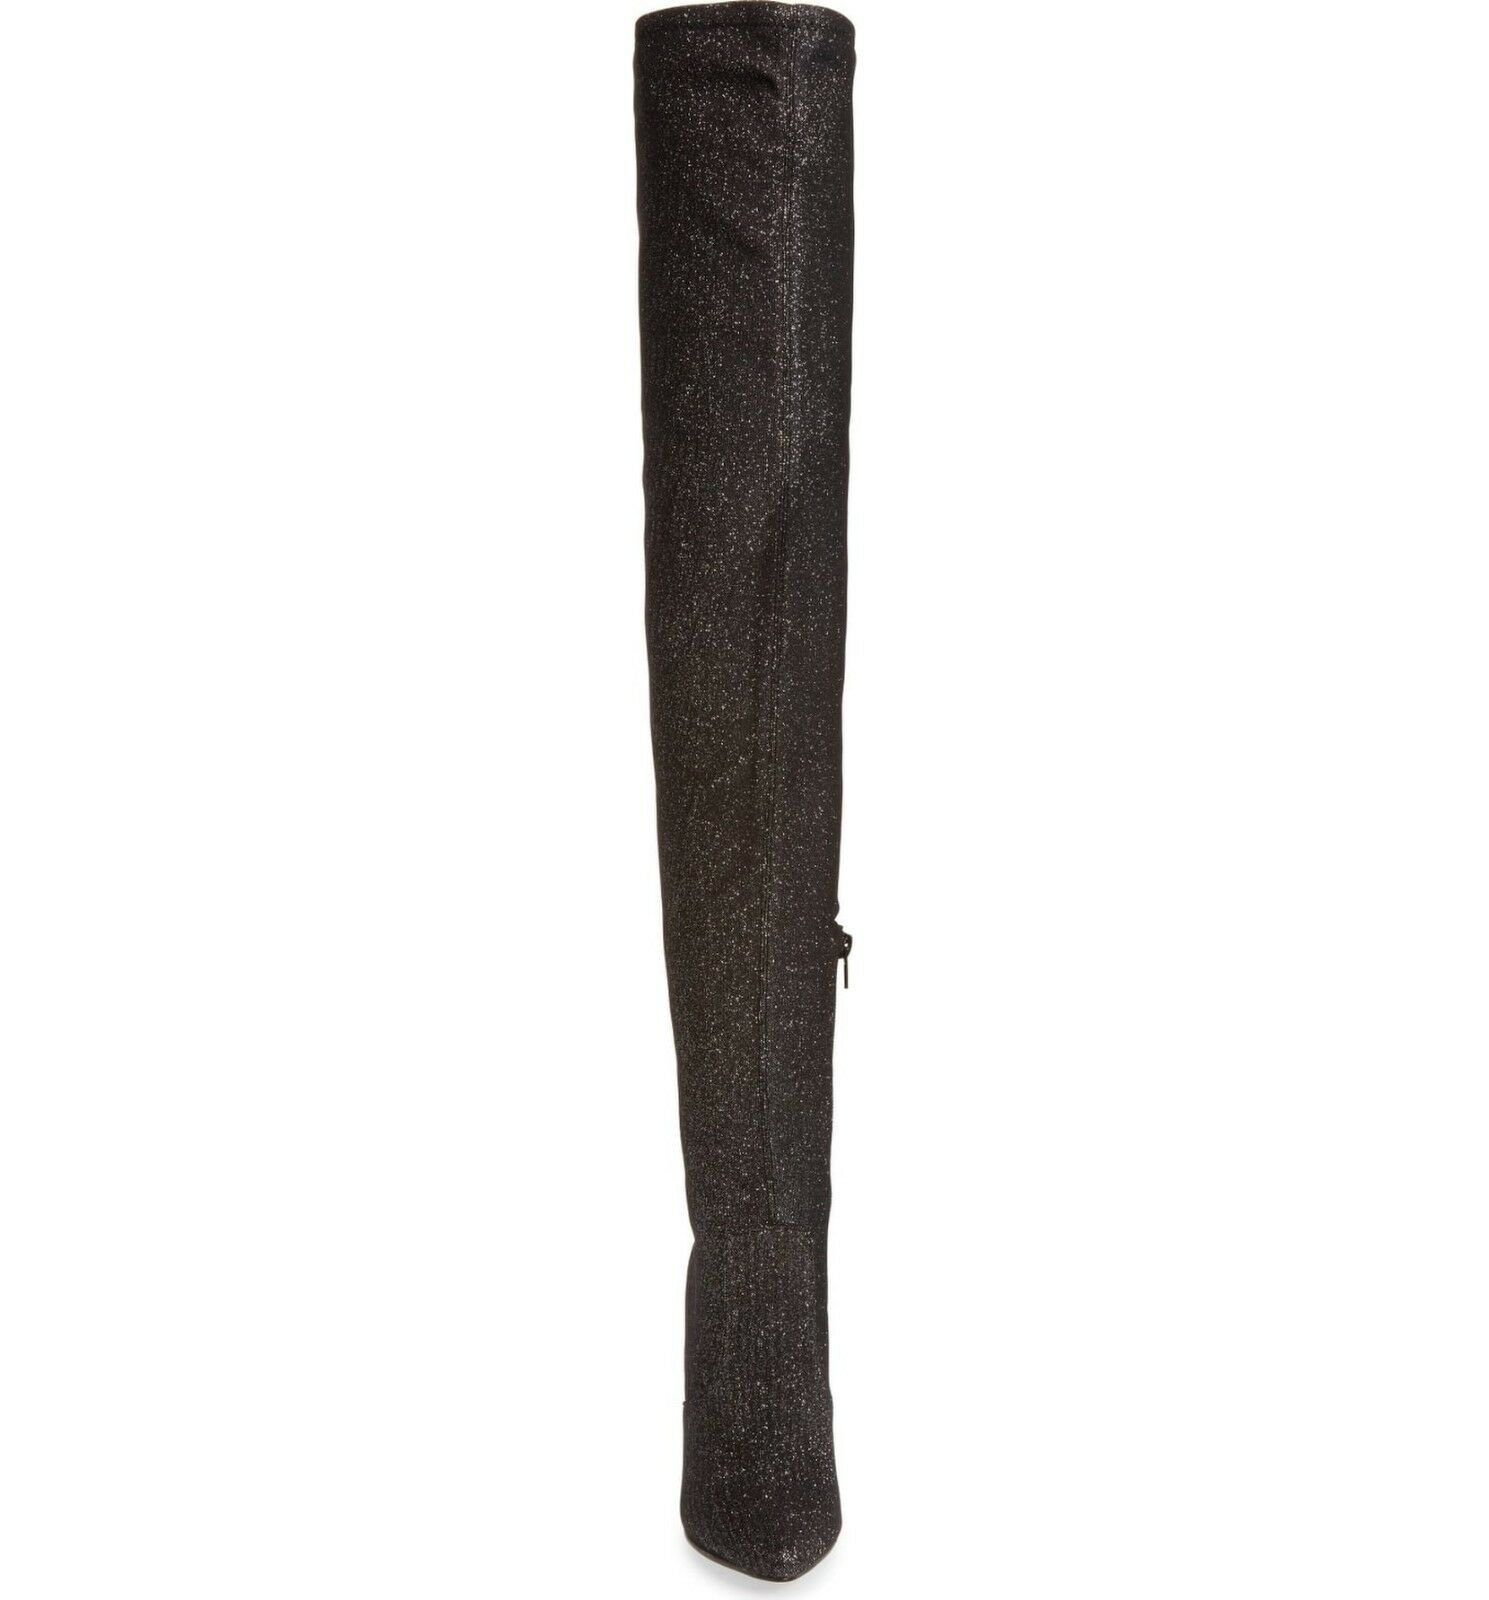 New STEVE Over MADDEN Crystals Over STEVE the Knee Stiefel c9dbab